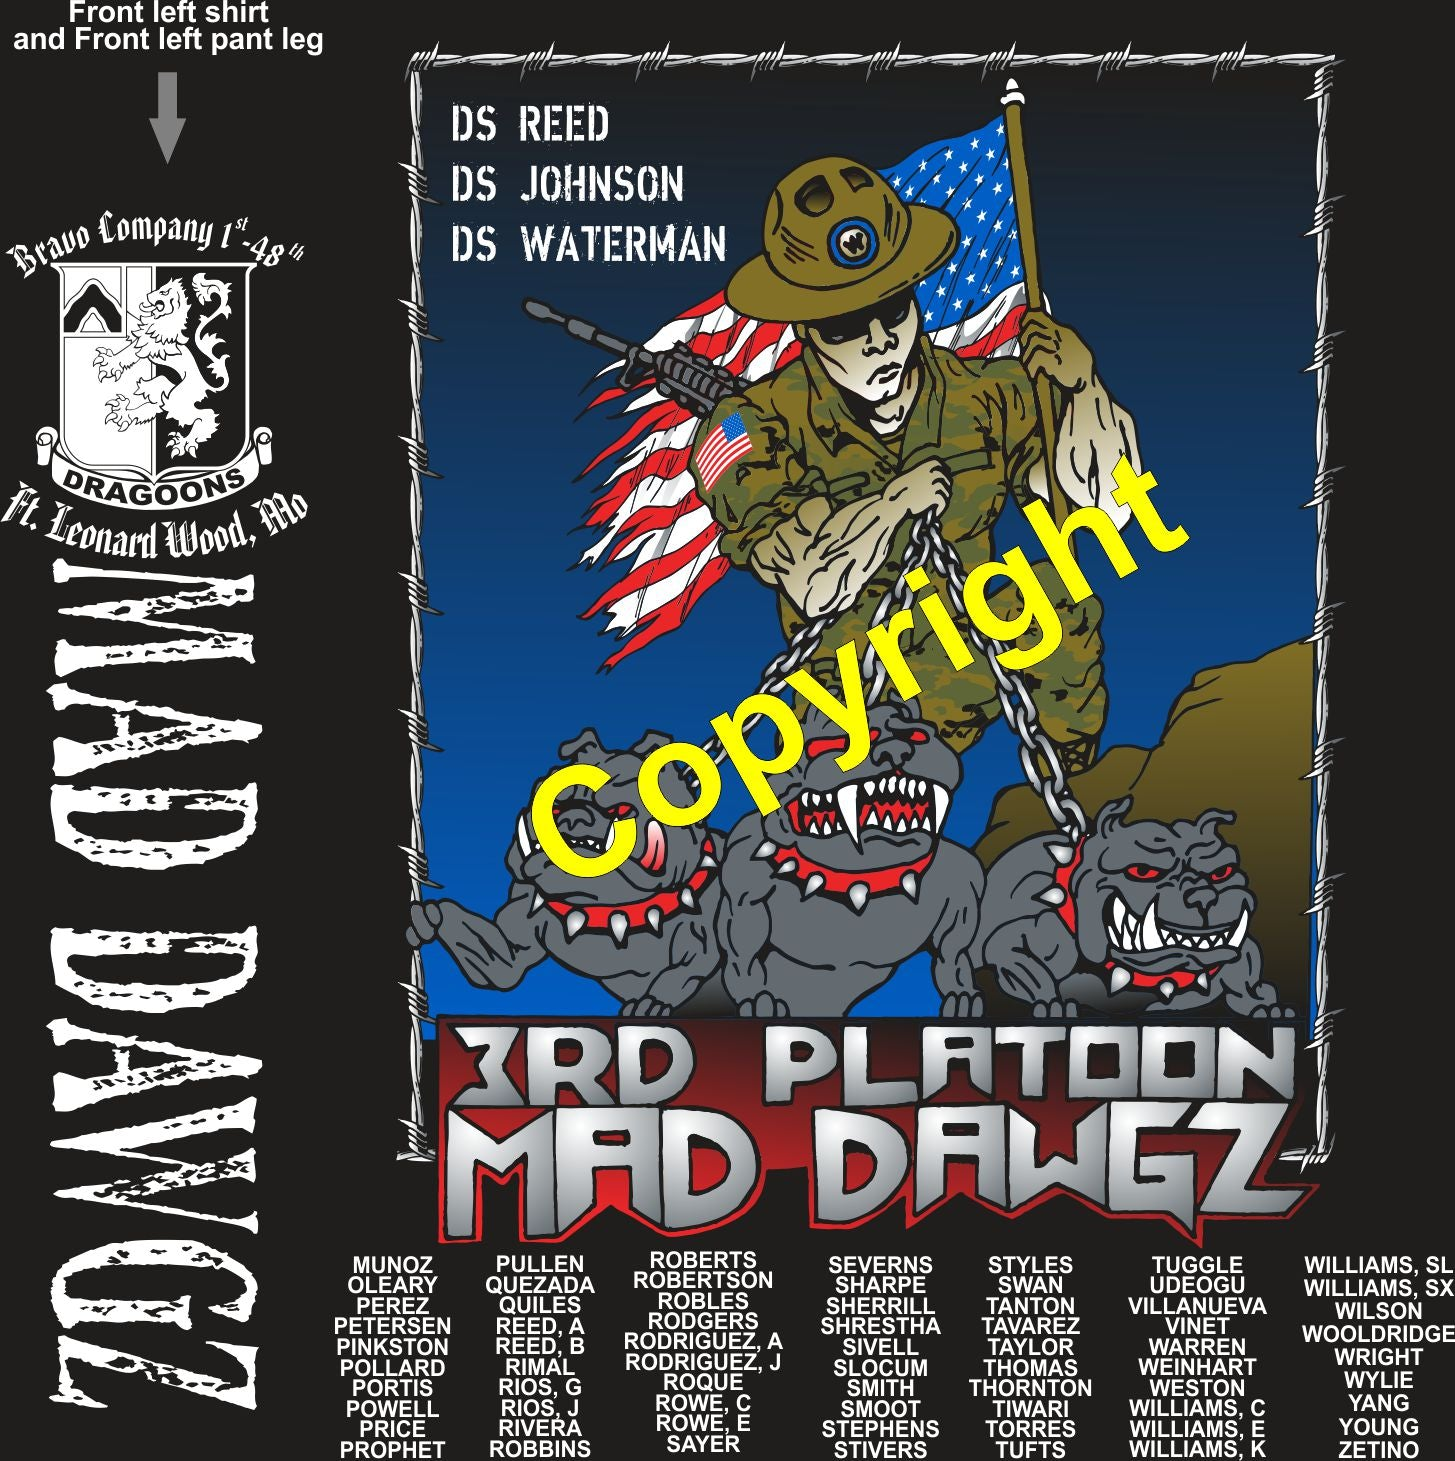 BRAVO 148 MAD DAWGS GRADUATING DAY 11-8-2018 digital